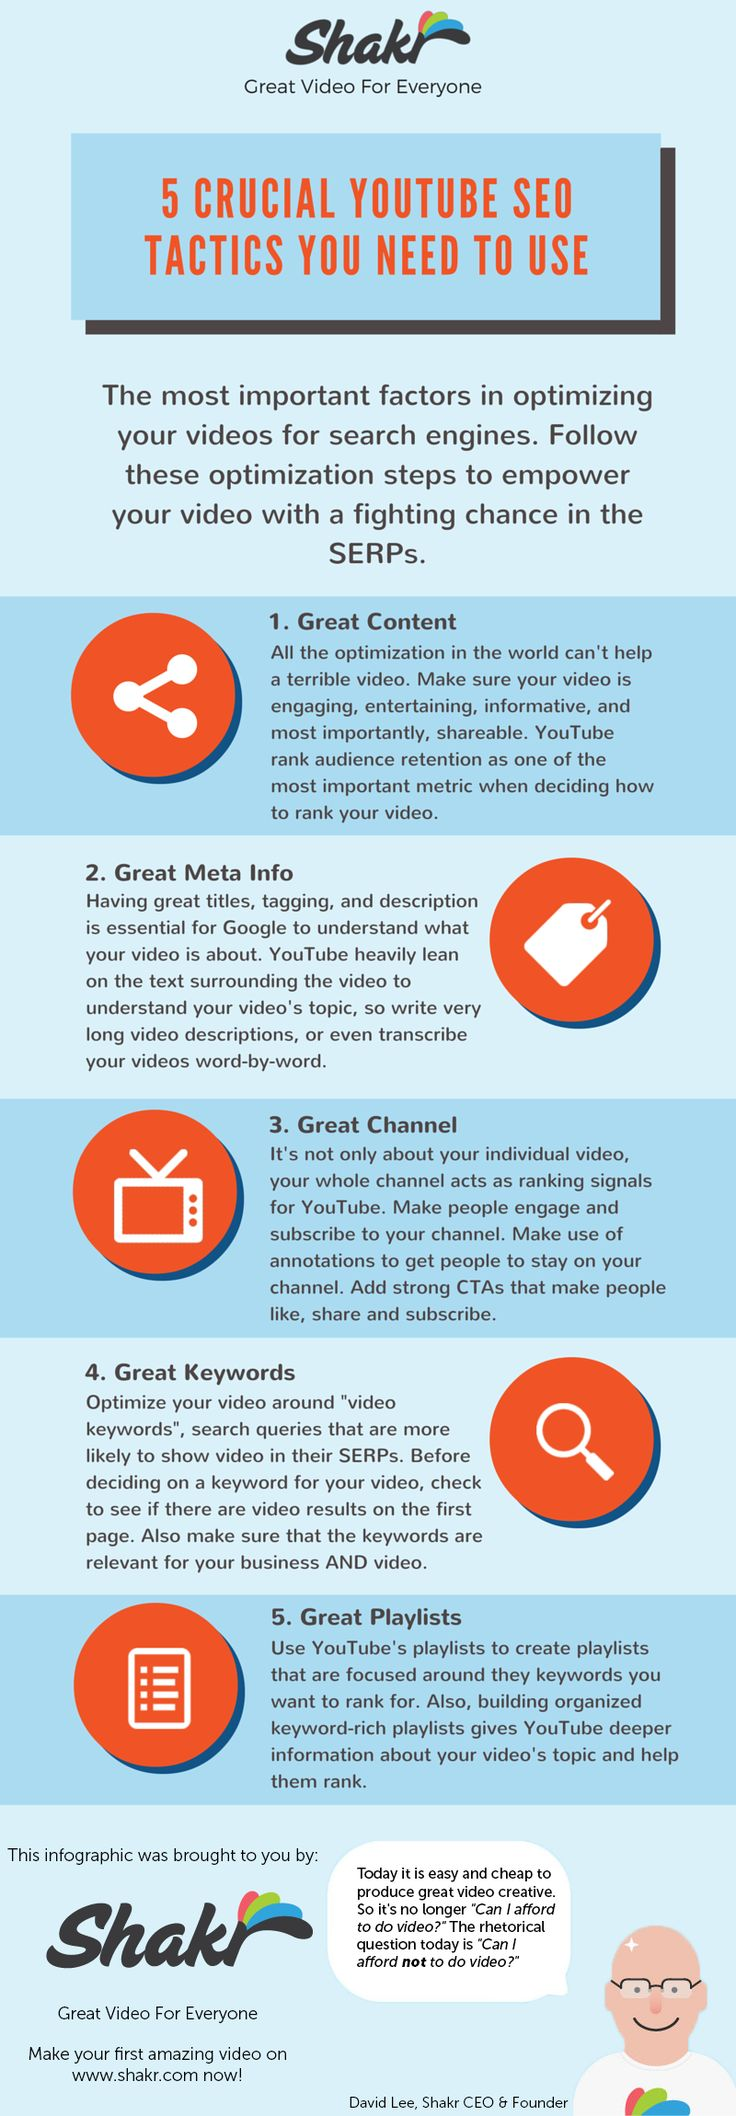 Video SEO Basics: Infographic by @Shakr - http://360phot0.com/video-seo-basics-infographic-by-shakr/